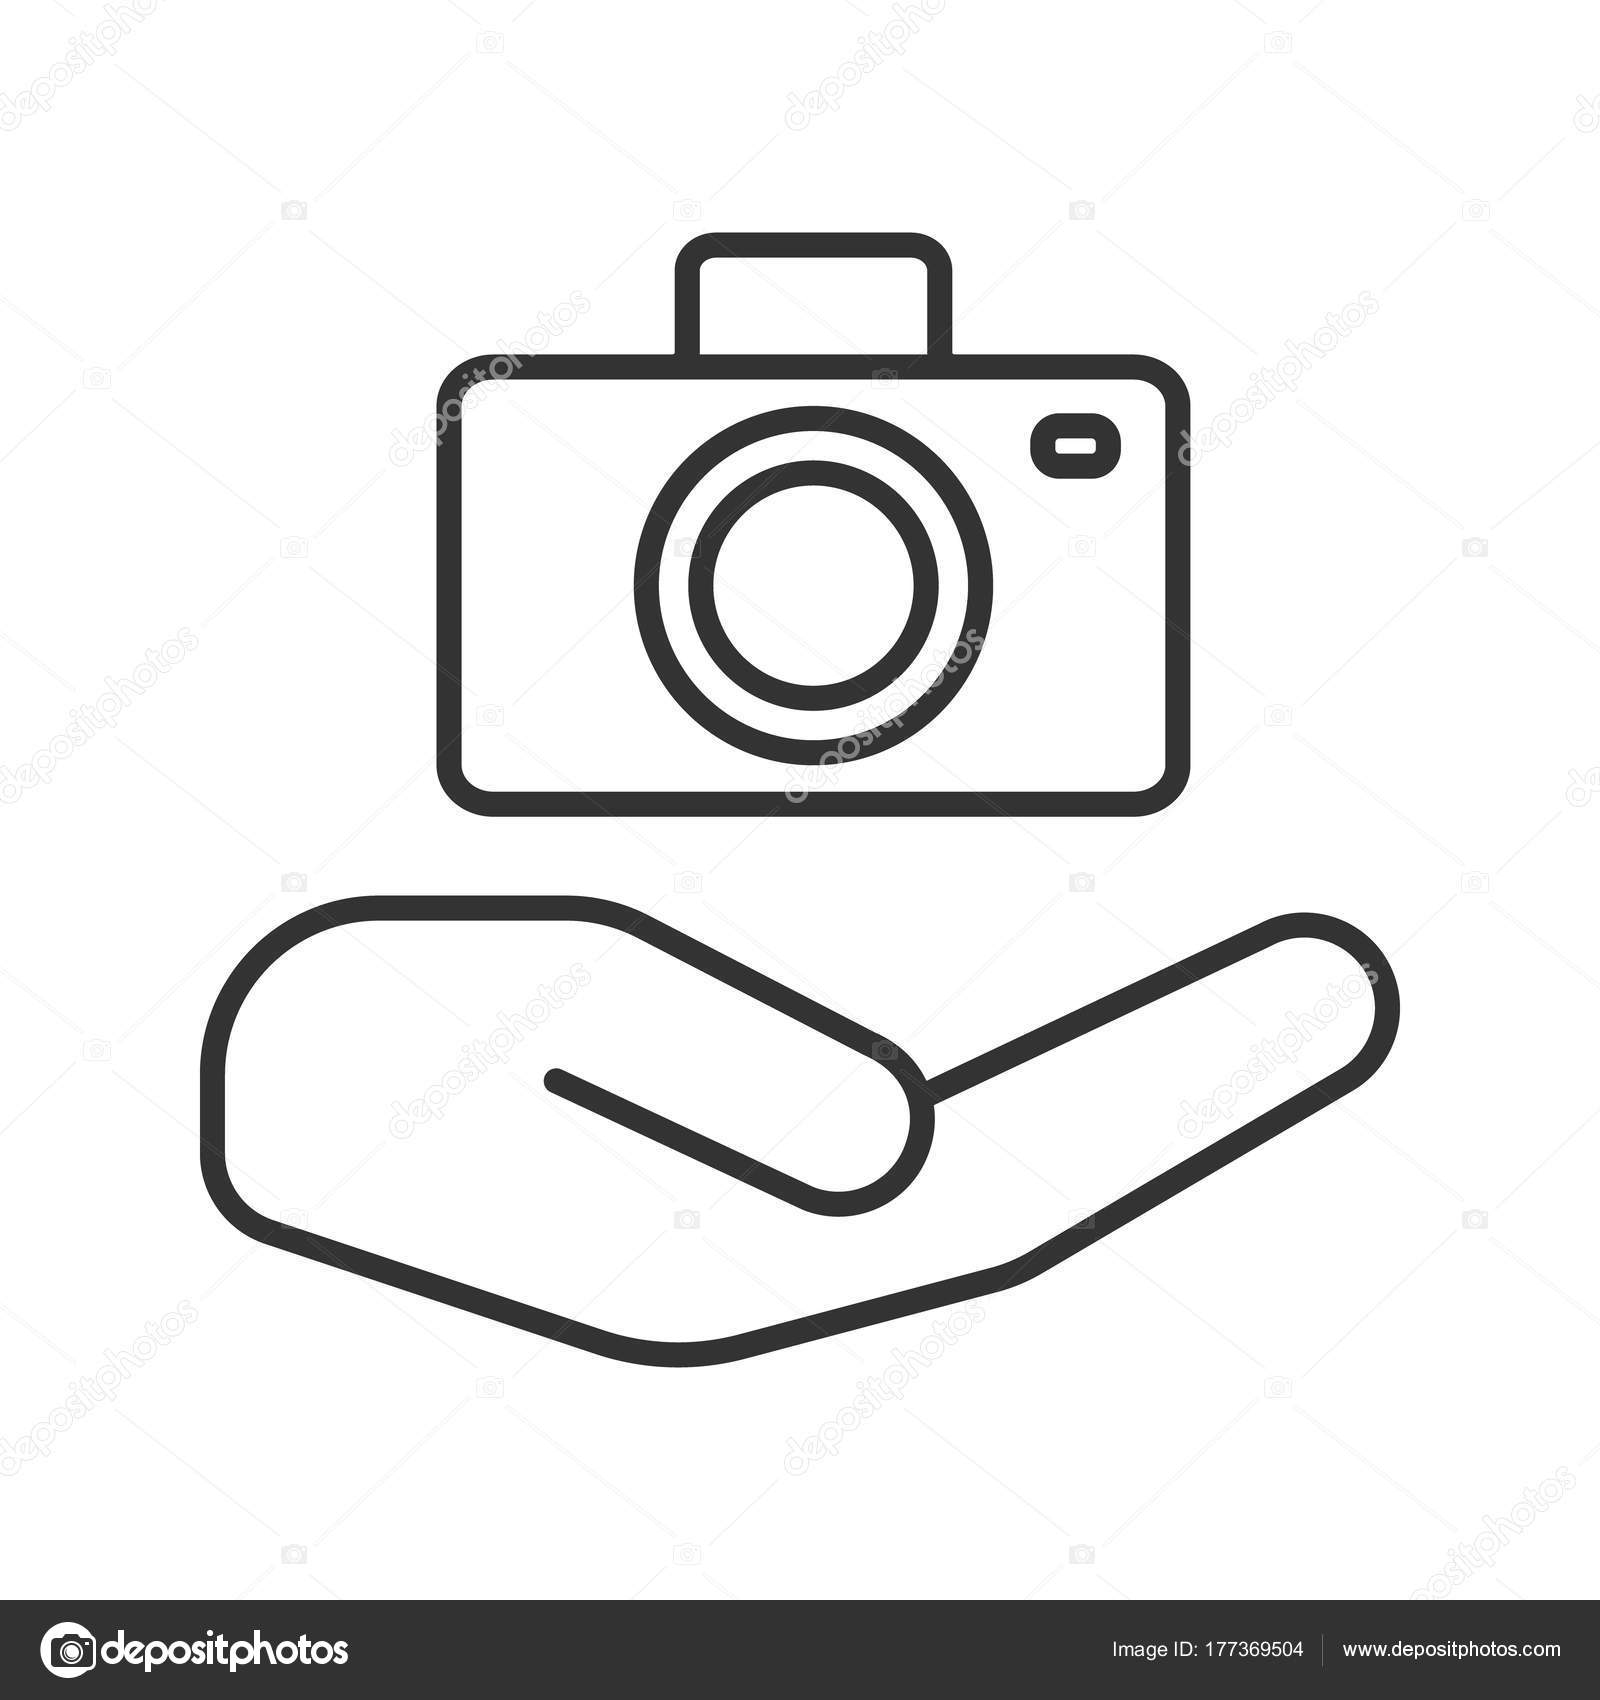 1600x1700 Open Hand Camera Linear Icon Photo Services Thin Line Illustration